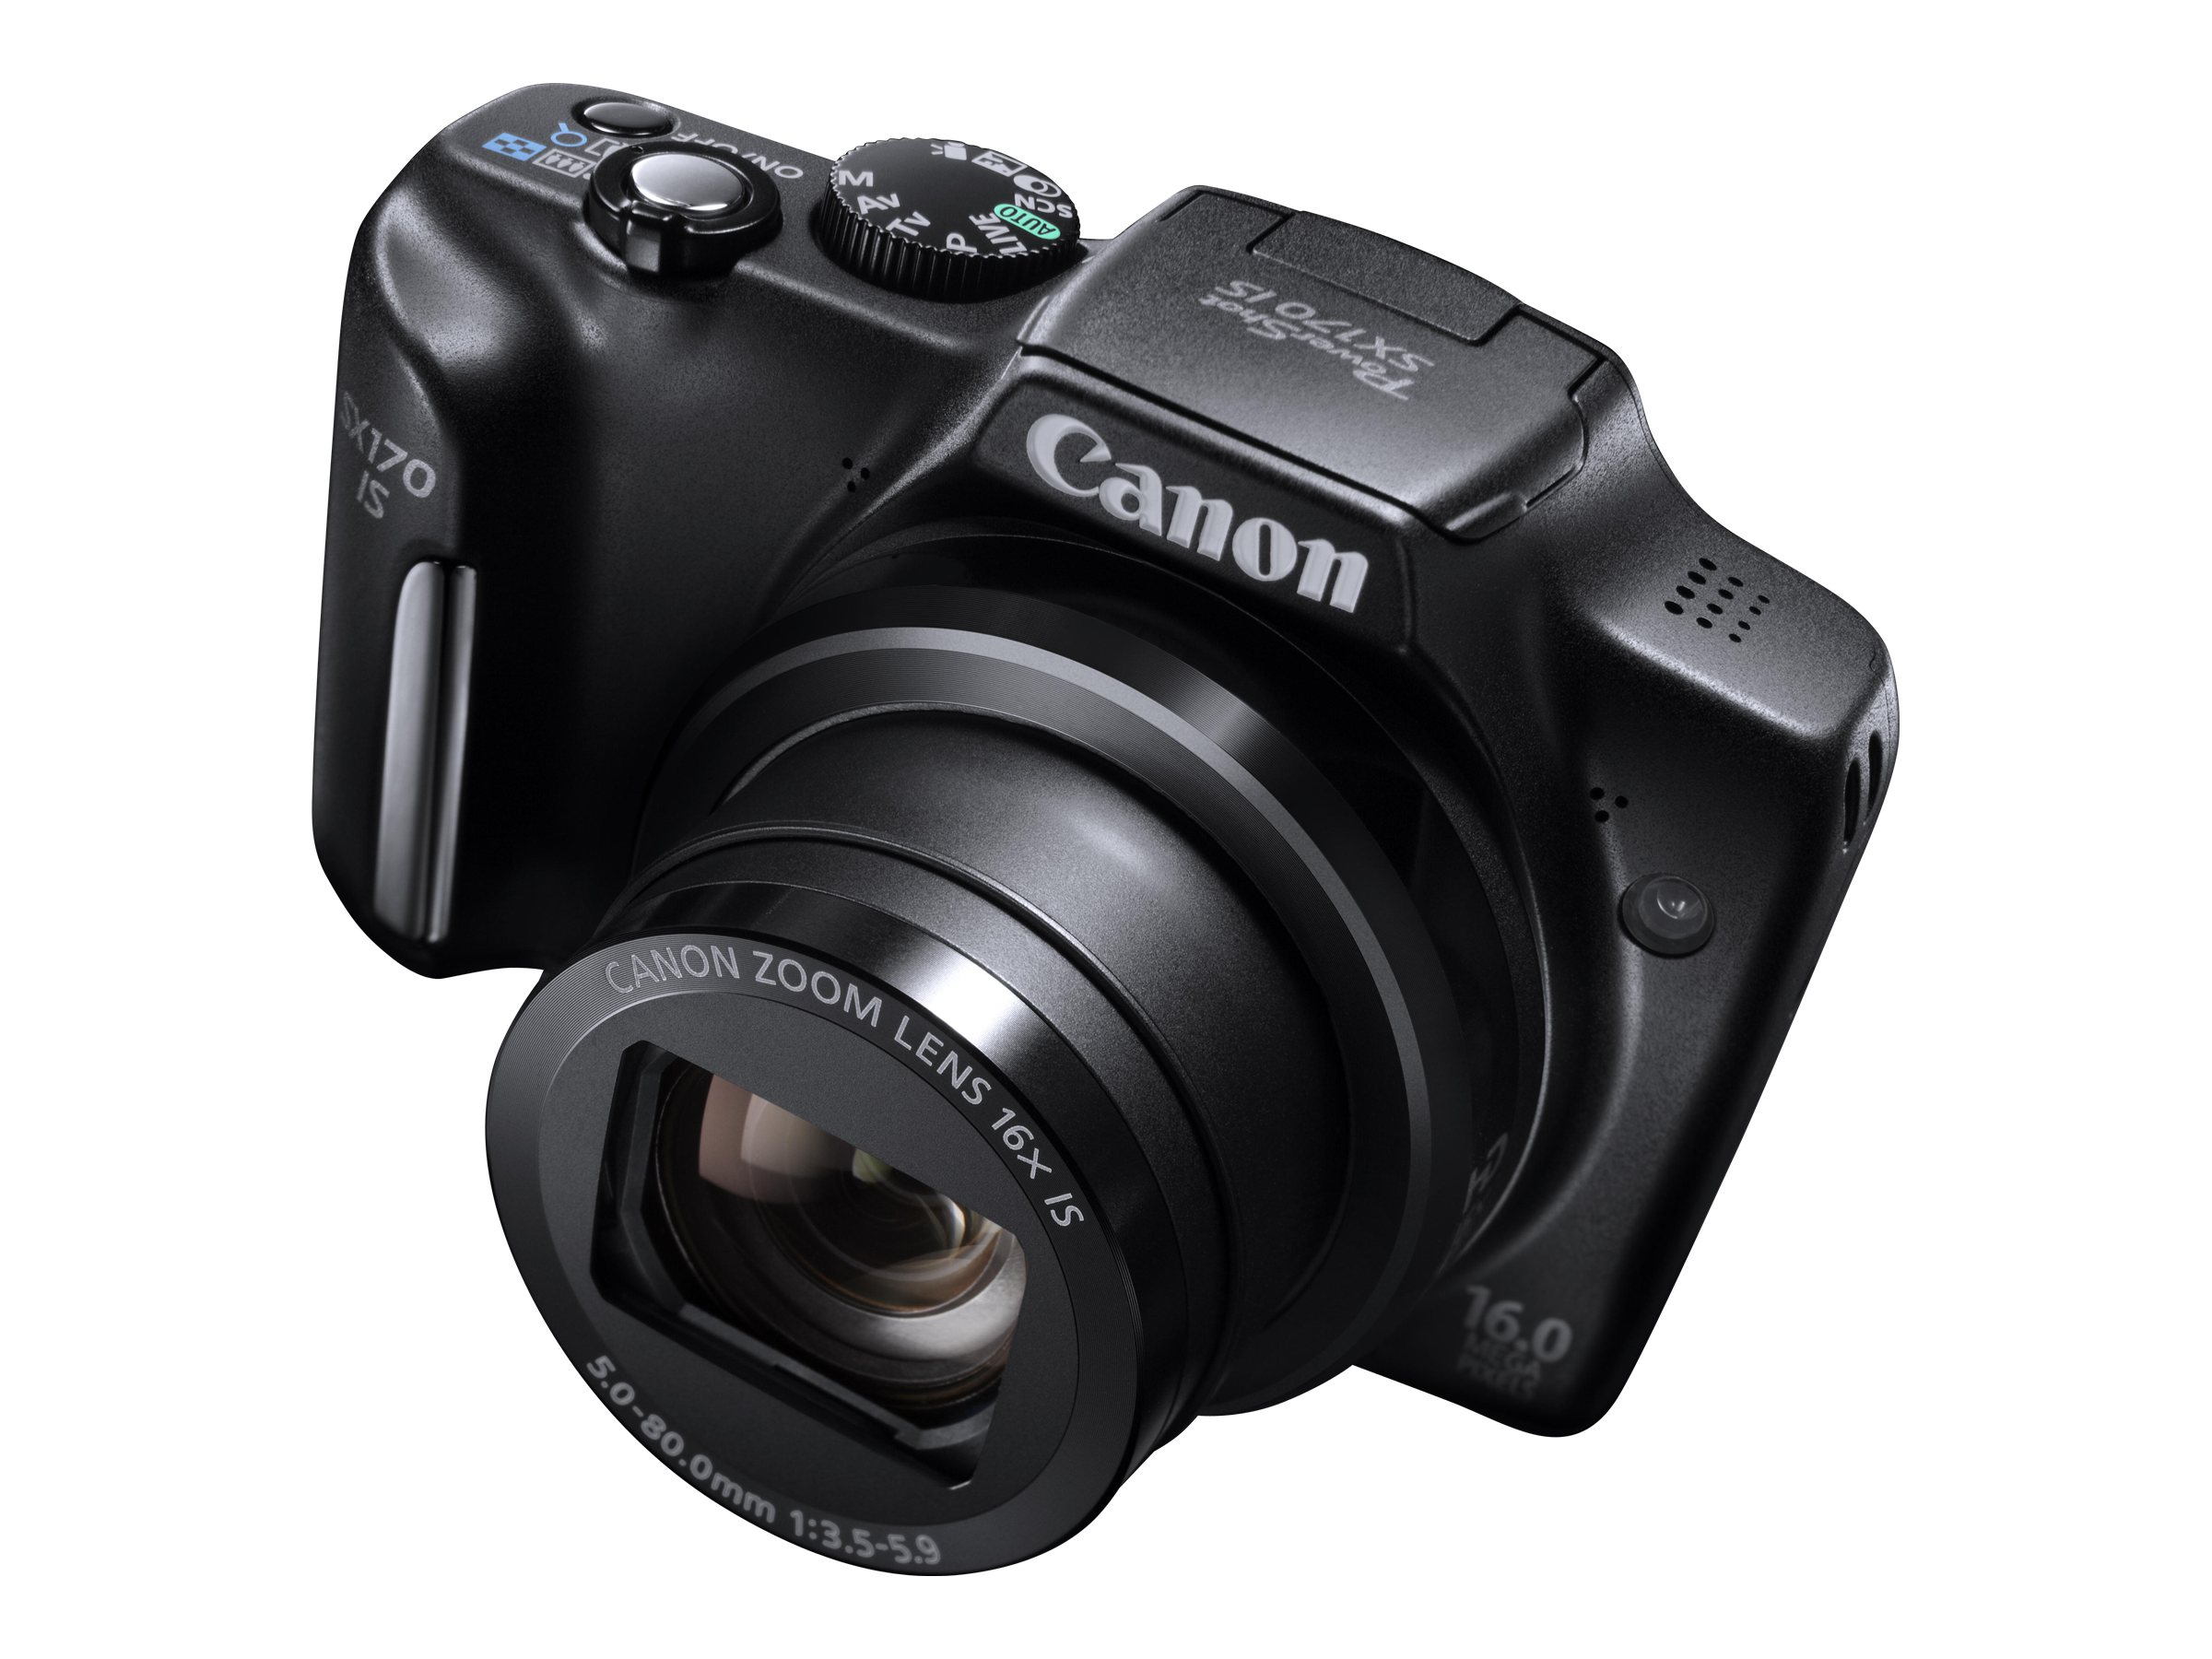 Canon 16.0-Megapixel PowerShot SX170 IS Digital Camera Black